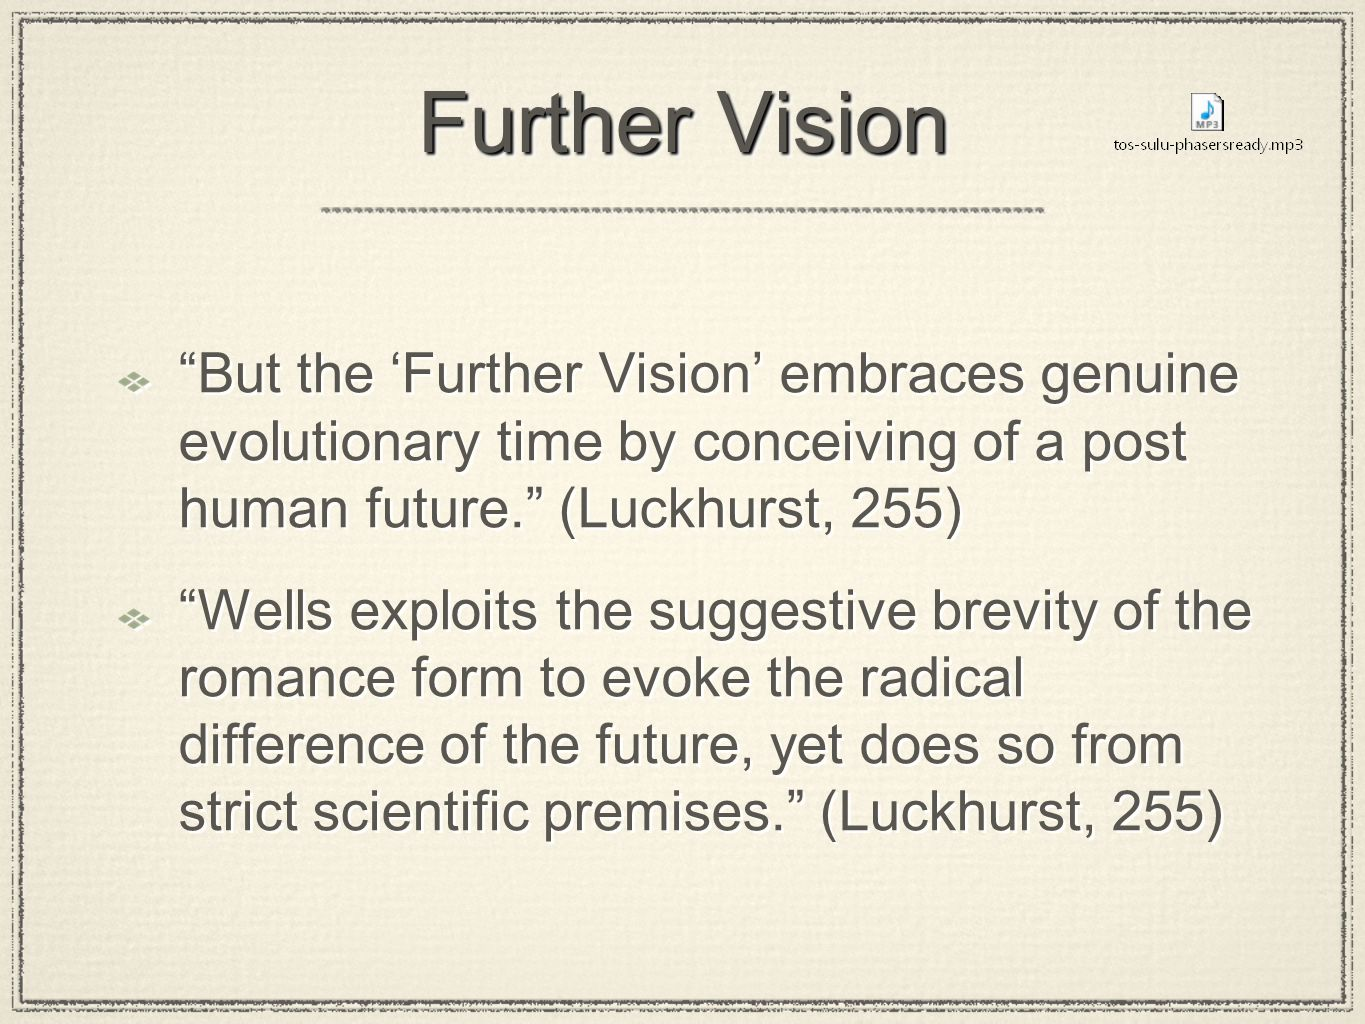 Further Vision But the 'Further Vision' embraces genuine evolutionary time by conceiving of a post human future. (Luckhurst, 255) Wells exploits the suggestive brevity of the romance form to evoke the radical difference of the future, yet does so from strict scientific premises. (Luckhurst, 255) But the 'Further Vision' embraces genuine evolutionary time by conceiving of a post human future. (Luckhurst, 255) Wells exploits the suggestive brevity of the romance form to evoke the radical difference of the future, yet does so from strict scientific premises. (Luckhurst, 255)